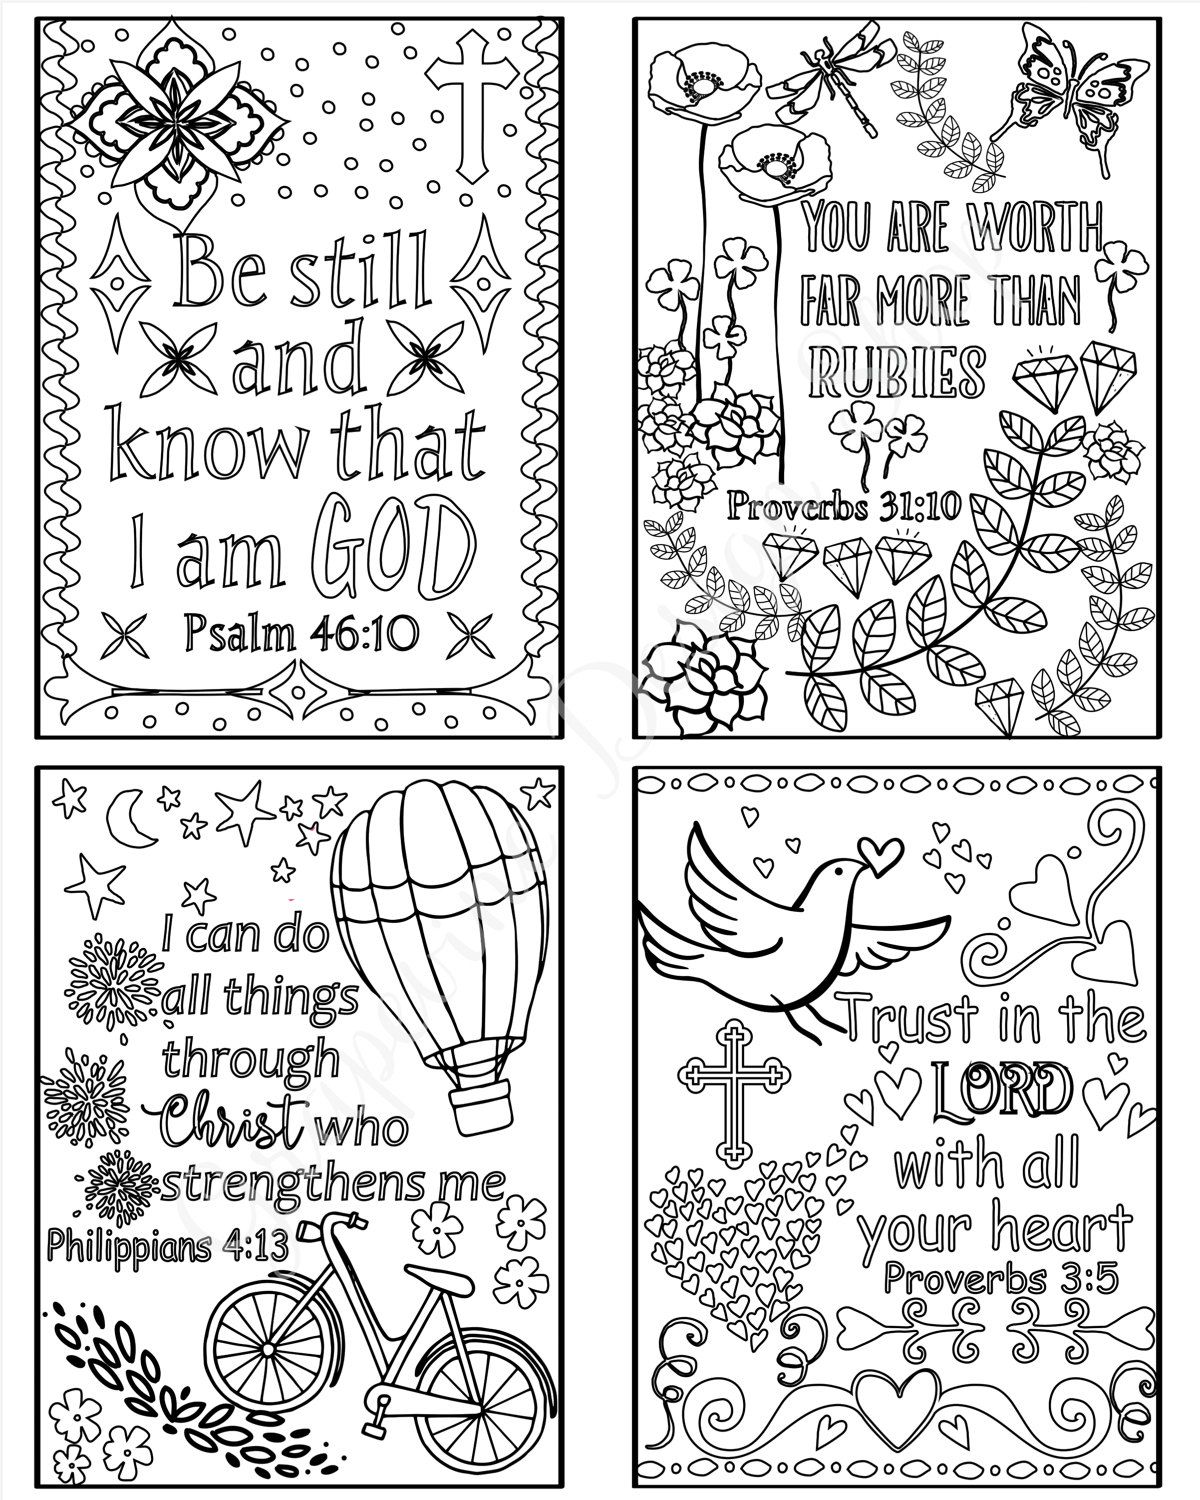 coloring bible verses for kids 11 bible verses to teach kids with printables to color coloring verses bible for kids